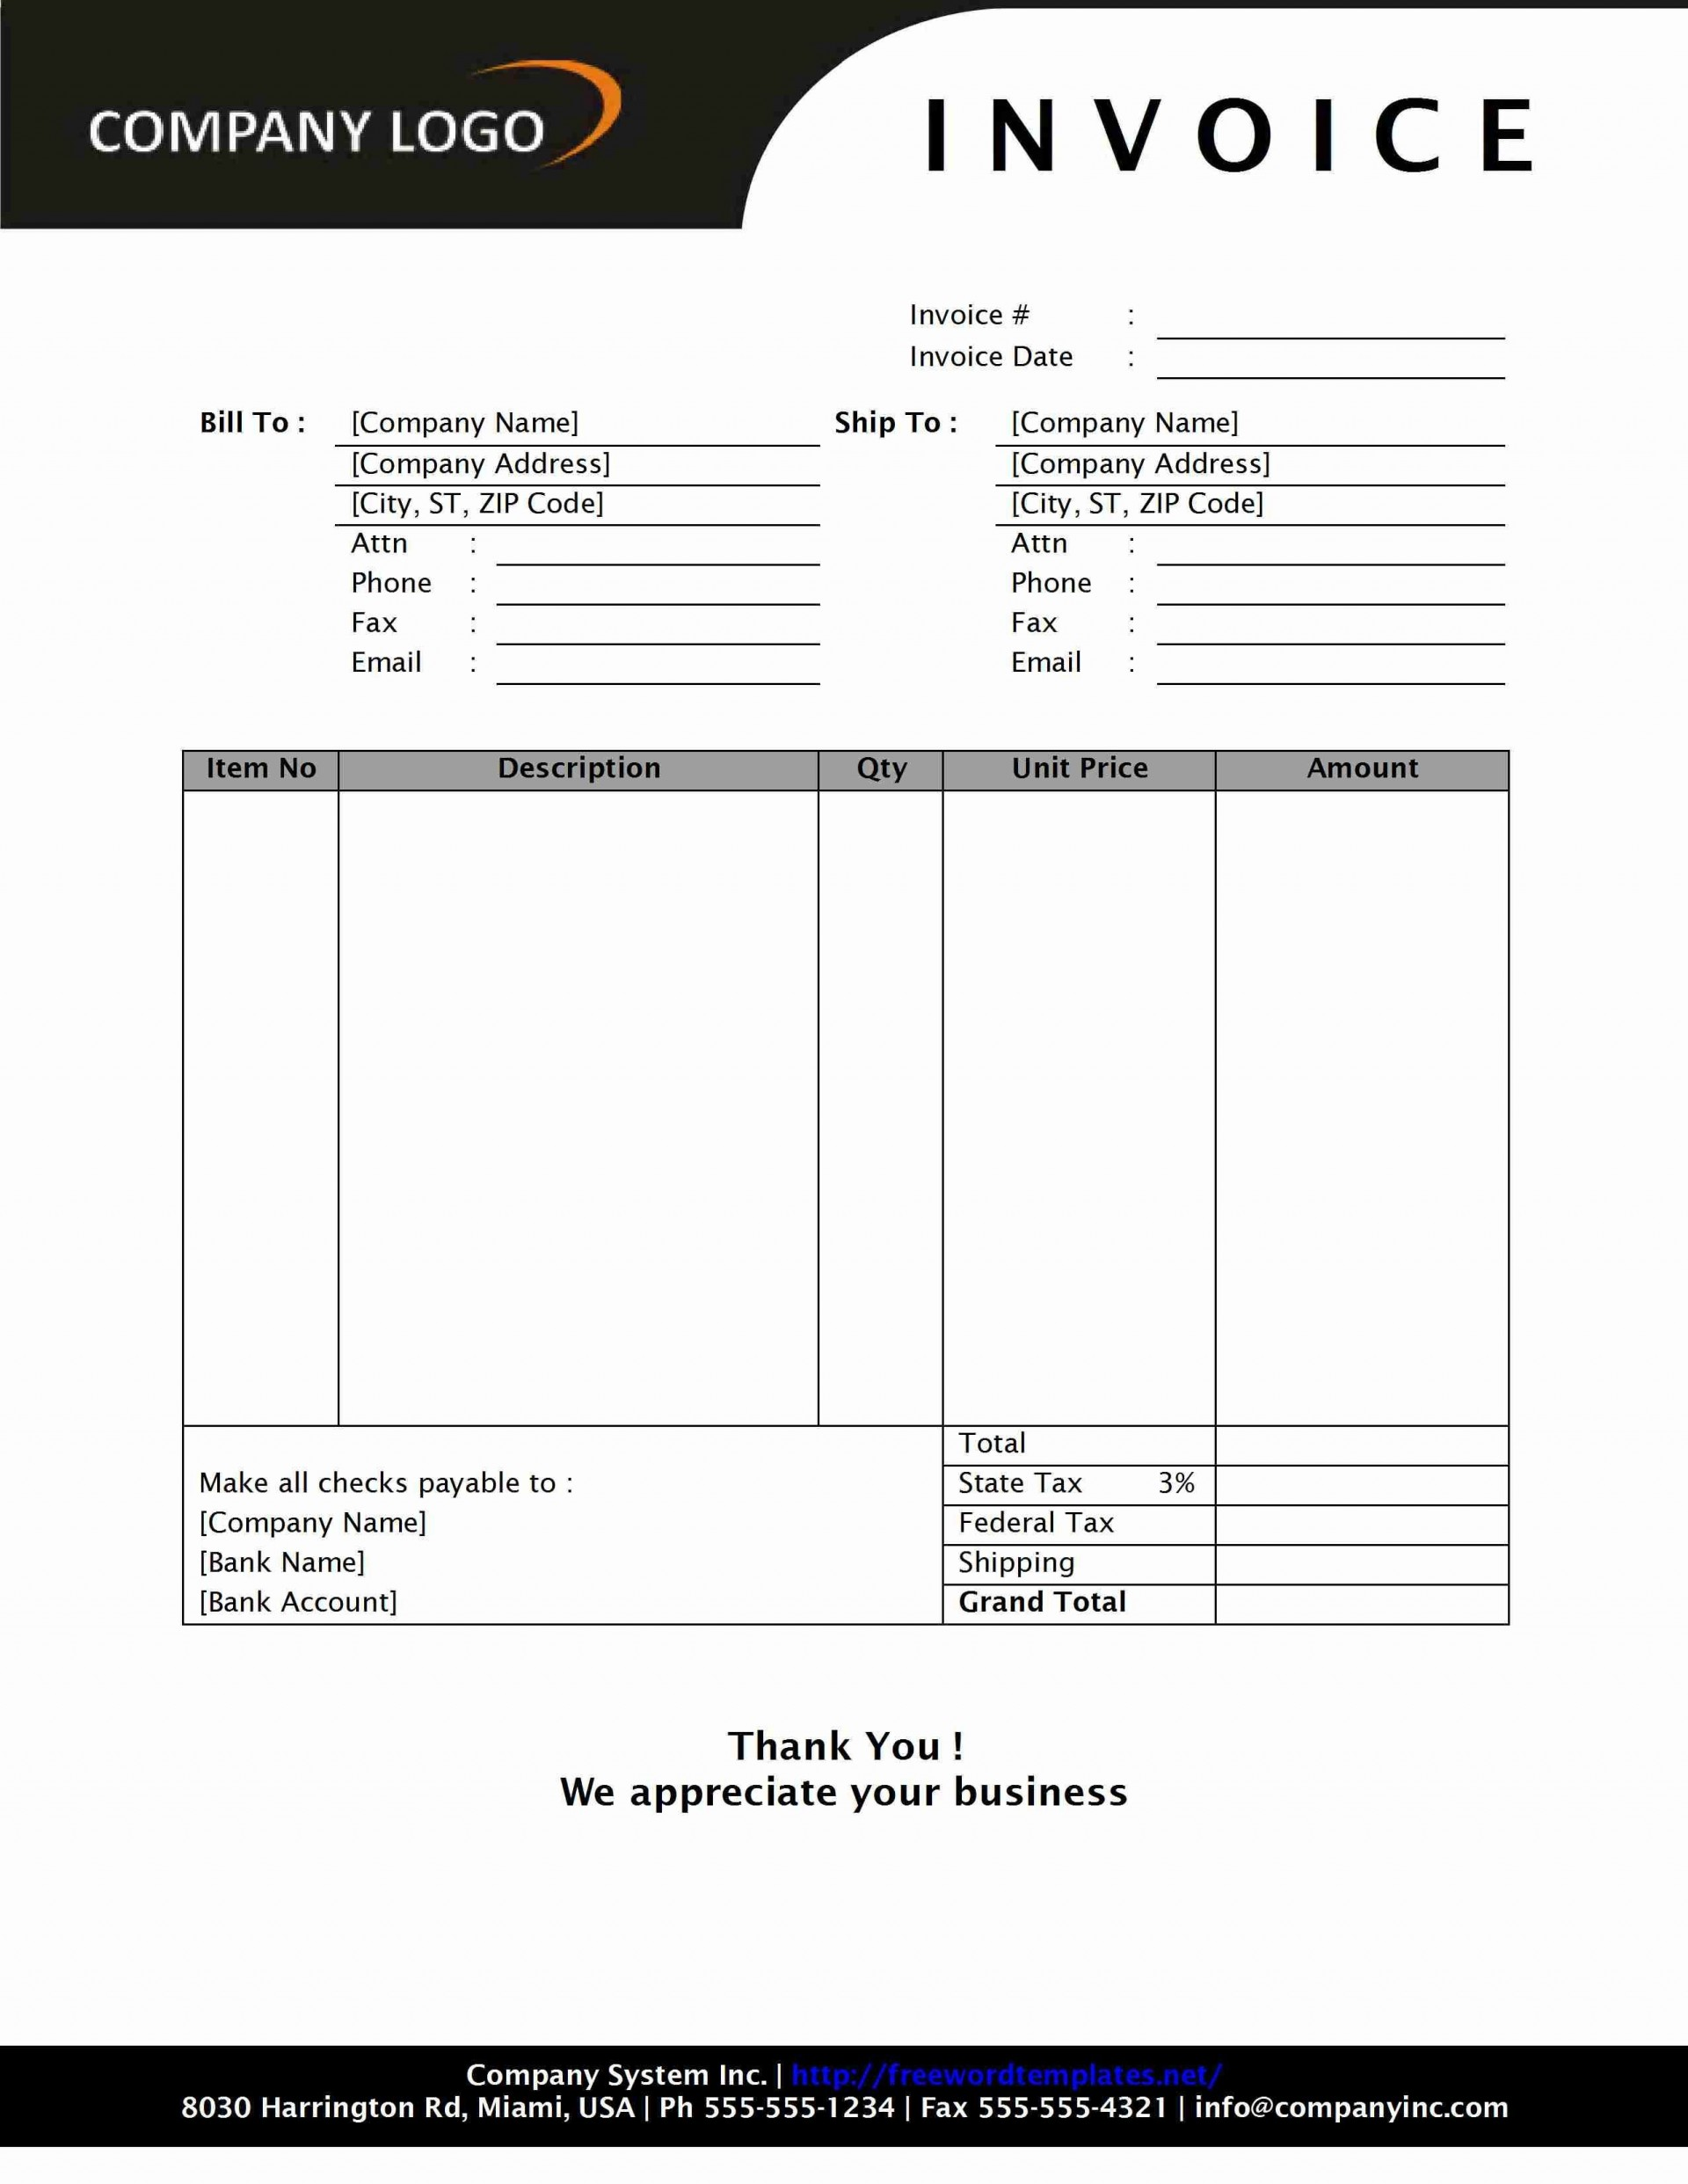 002 Archaicawful Invoice Template Free Download High Resolution  Downloads Responsive Html Excel1920